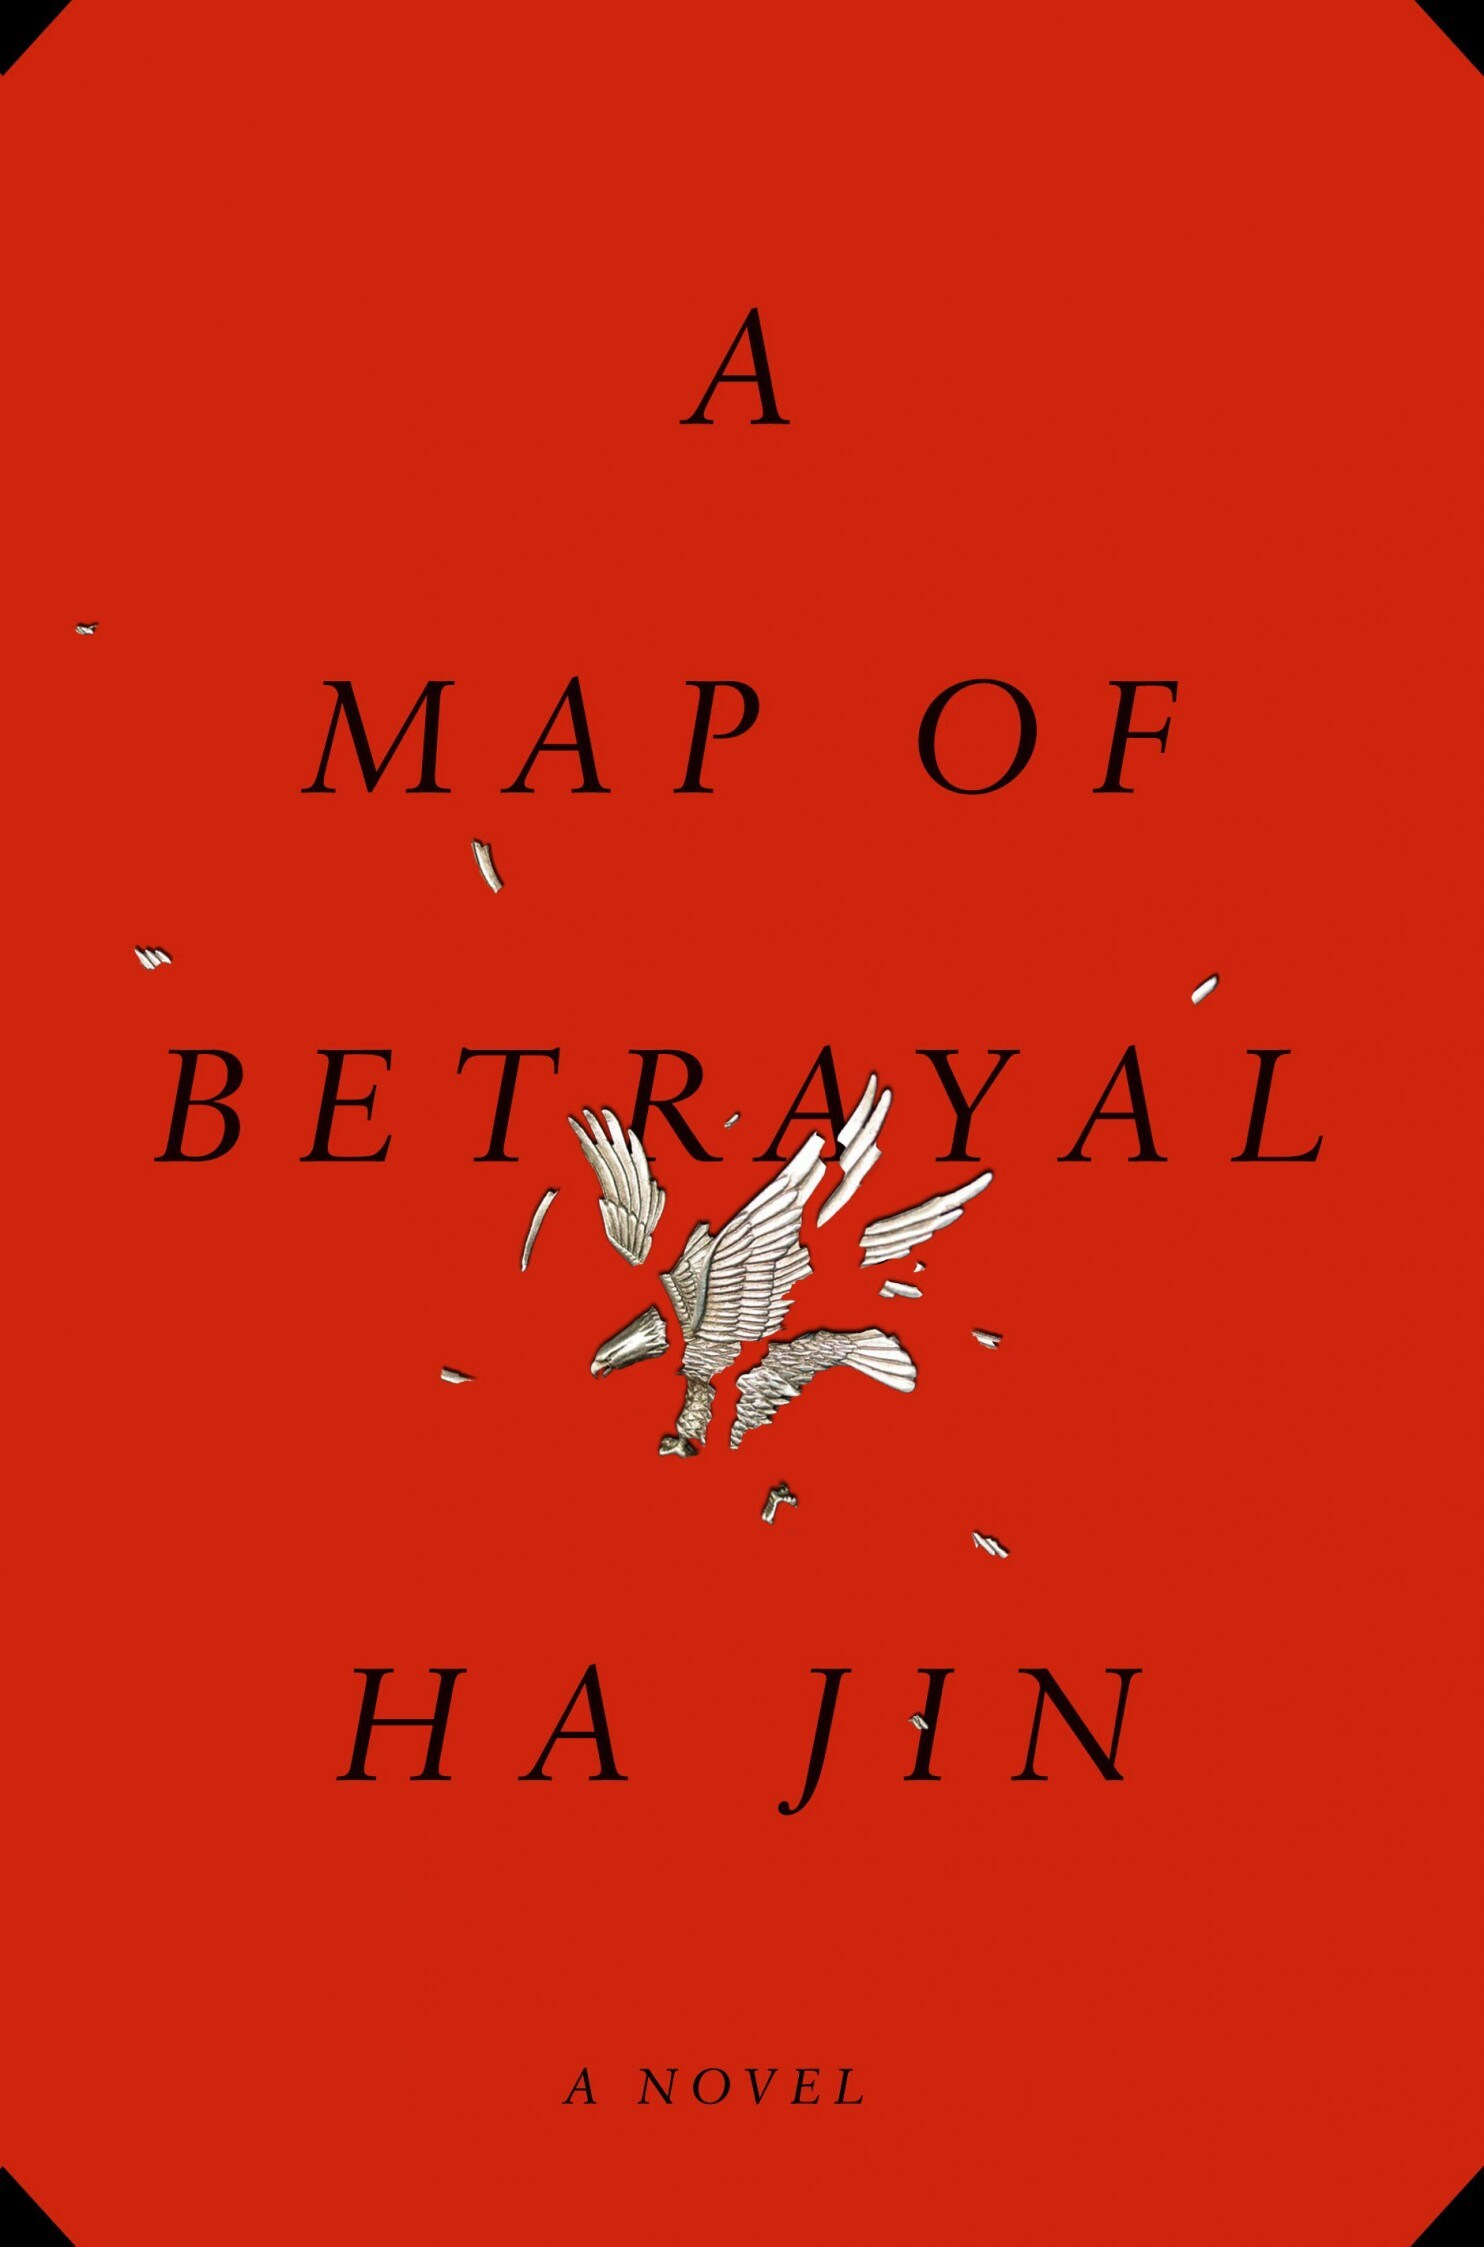 A Map of betrayl by Ha Jin